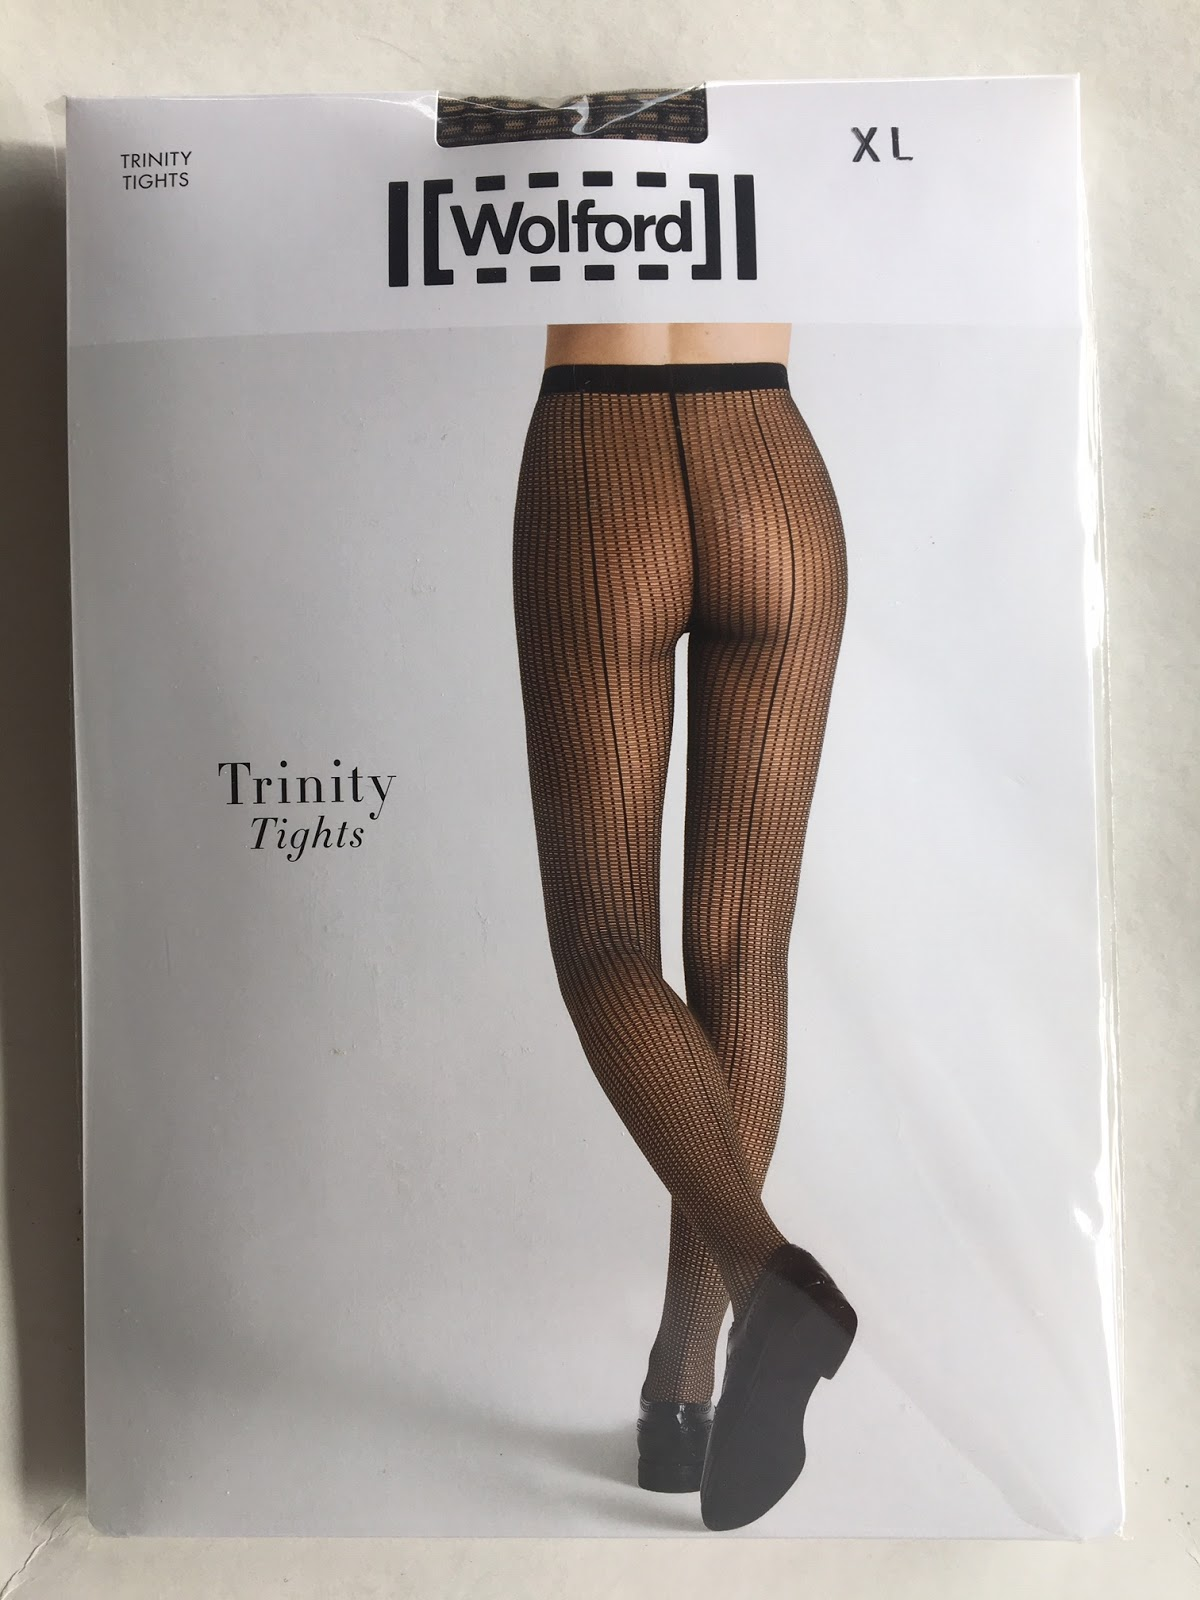 8632890b0 The Wolford Trinity Tights have just been launched by Wolford.